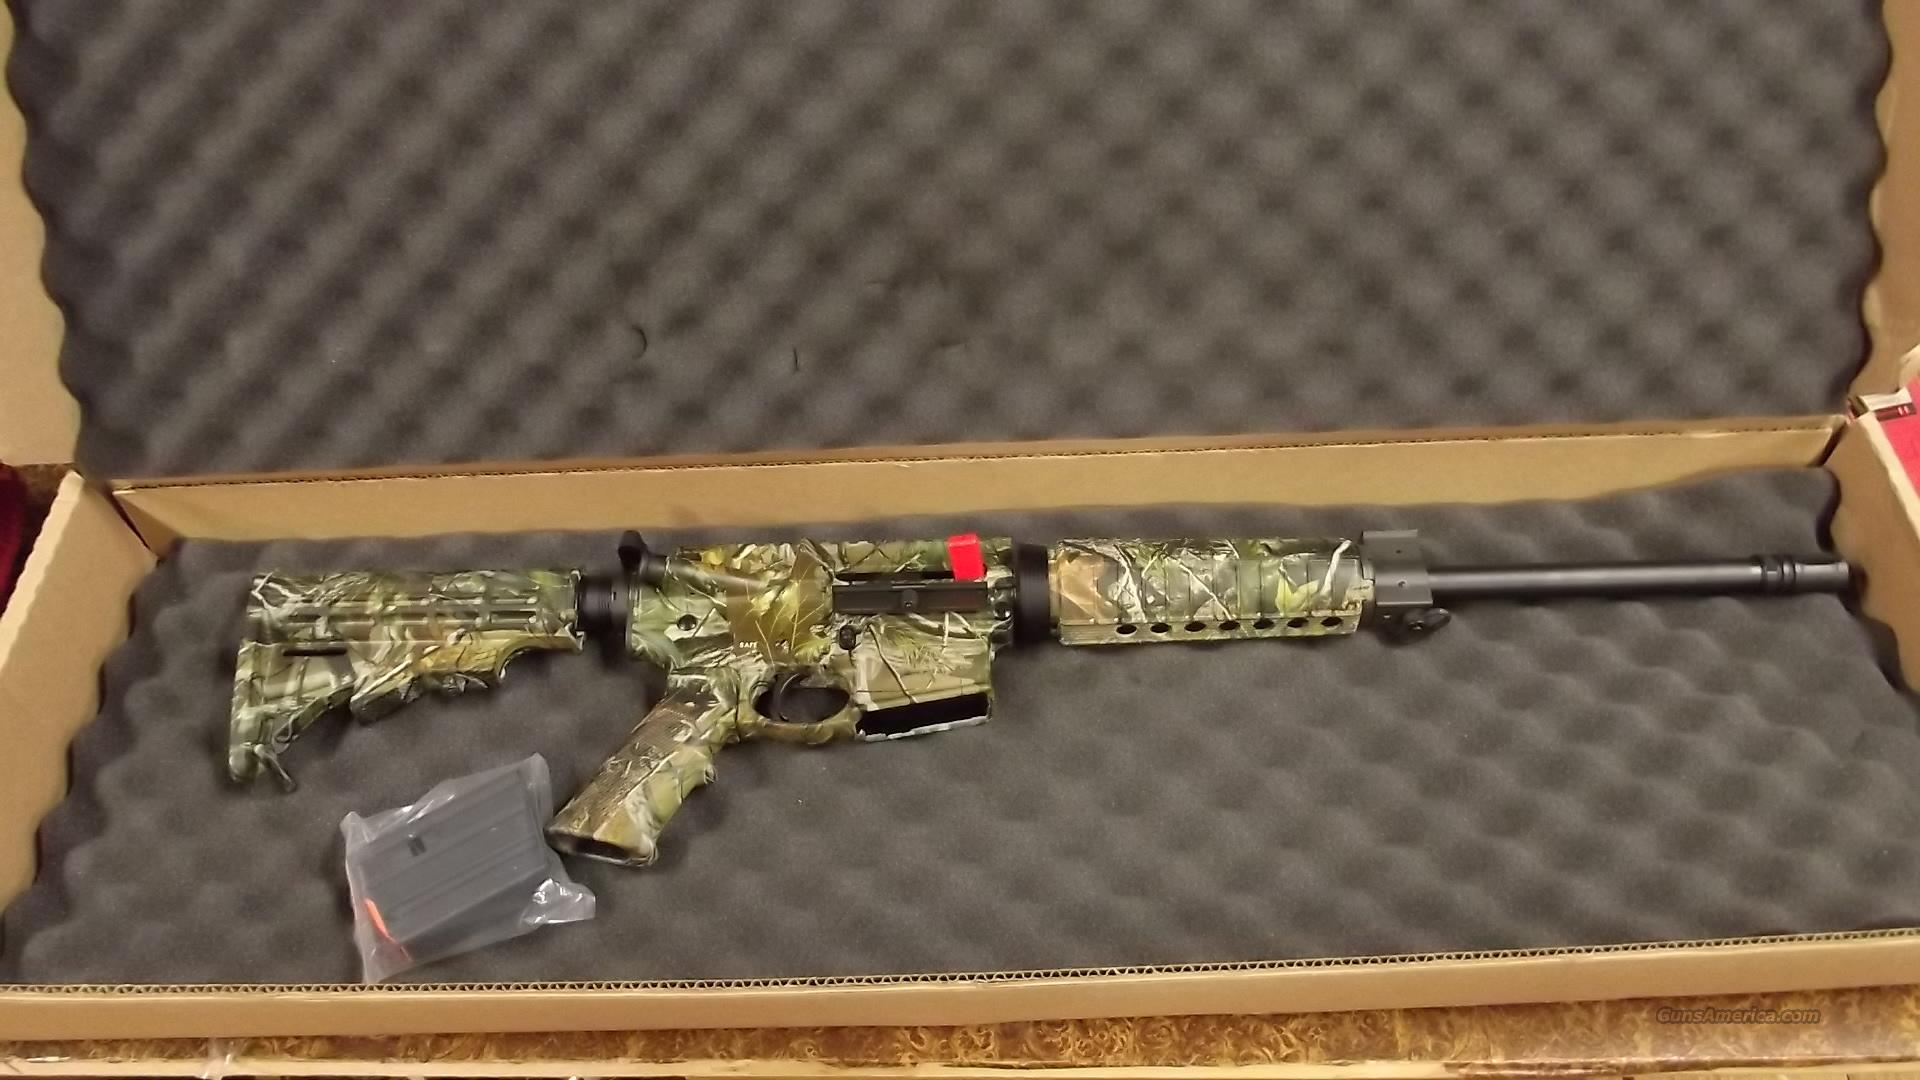 Smith and Wesson M&P AR15 300 Whisper/300AAC Blackout  Guns > Rifles > Smith & Wesson Rifles > M&P